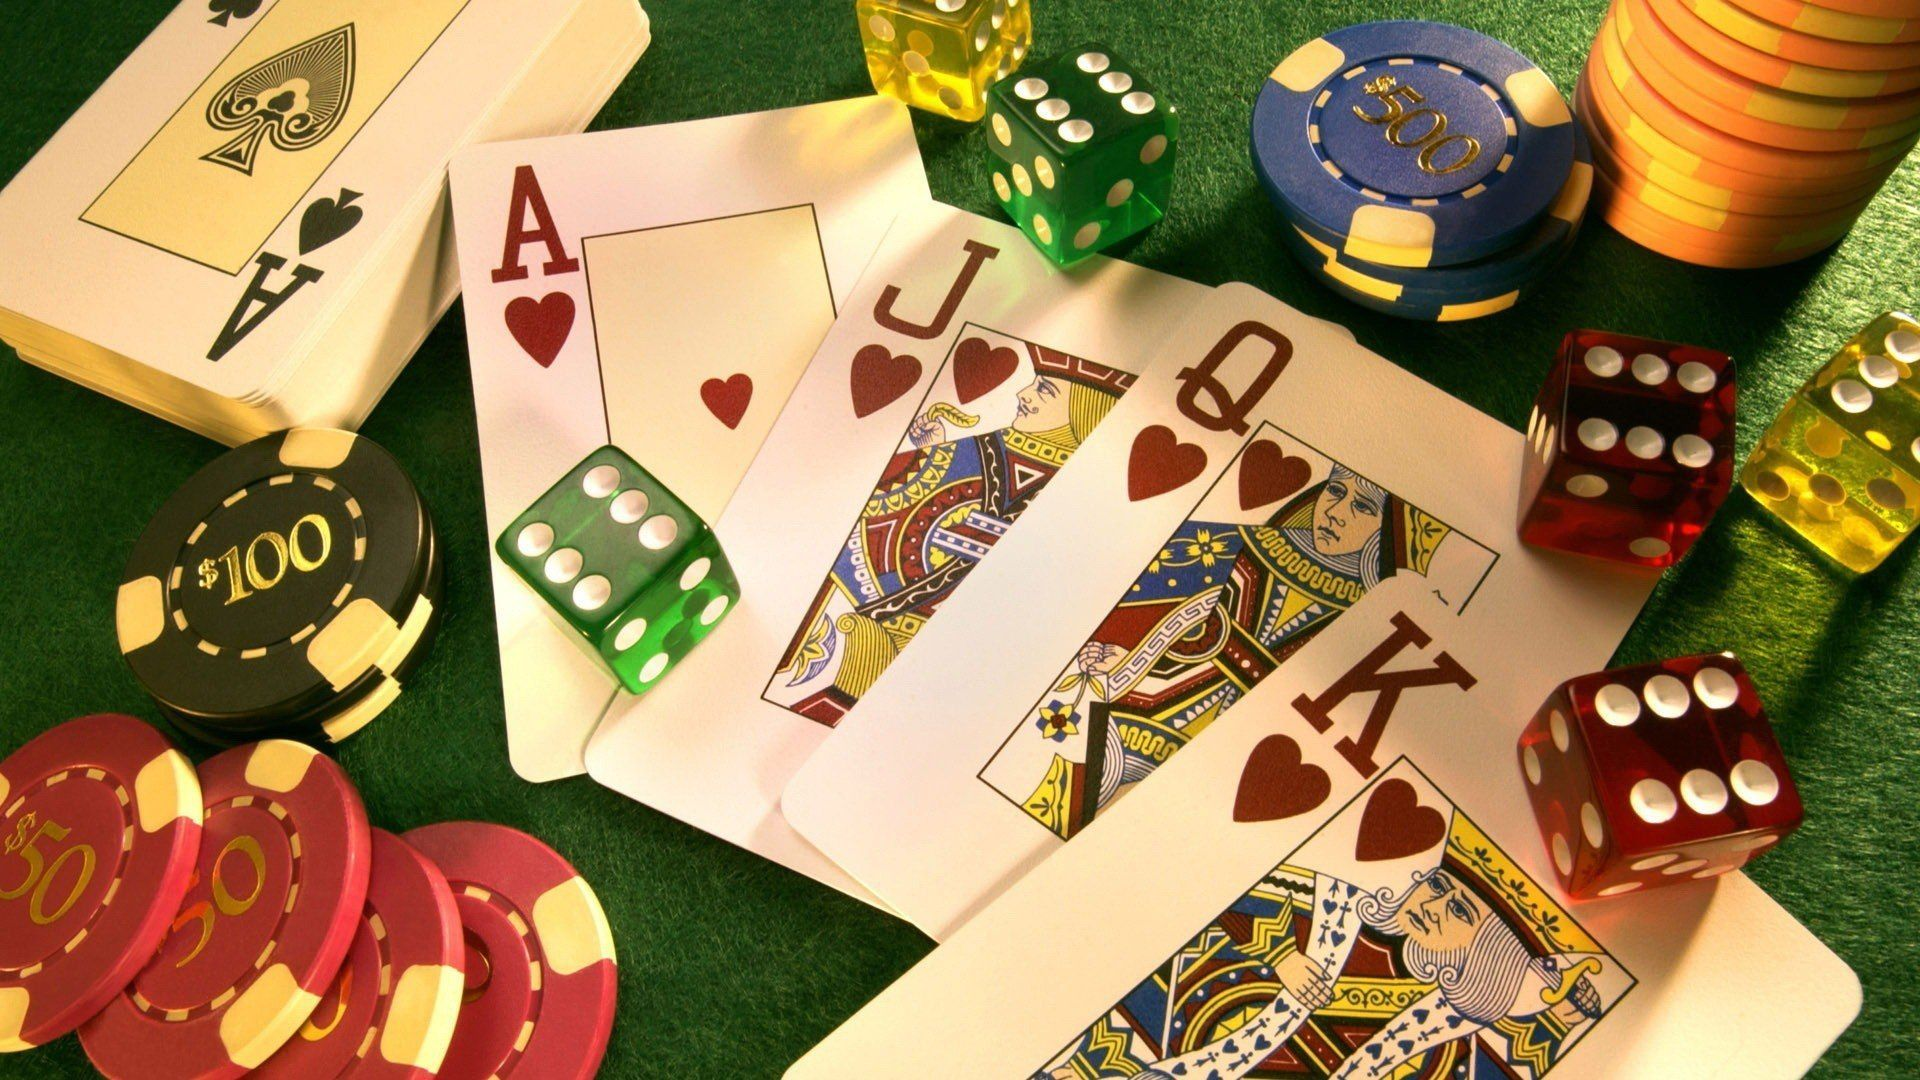 How You Can Earn $1,000,000 Using Online Casino